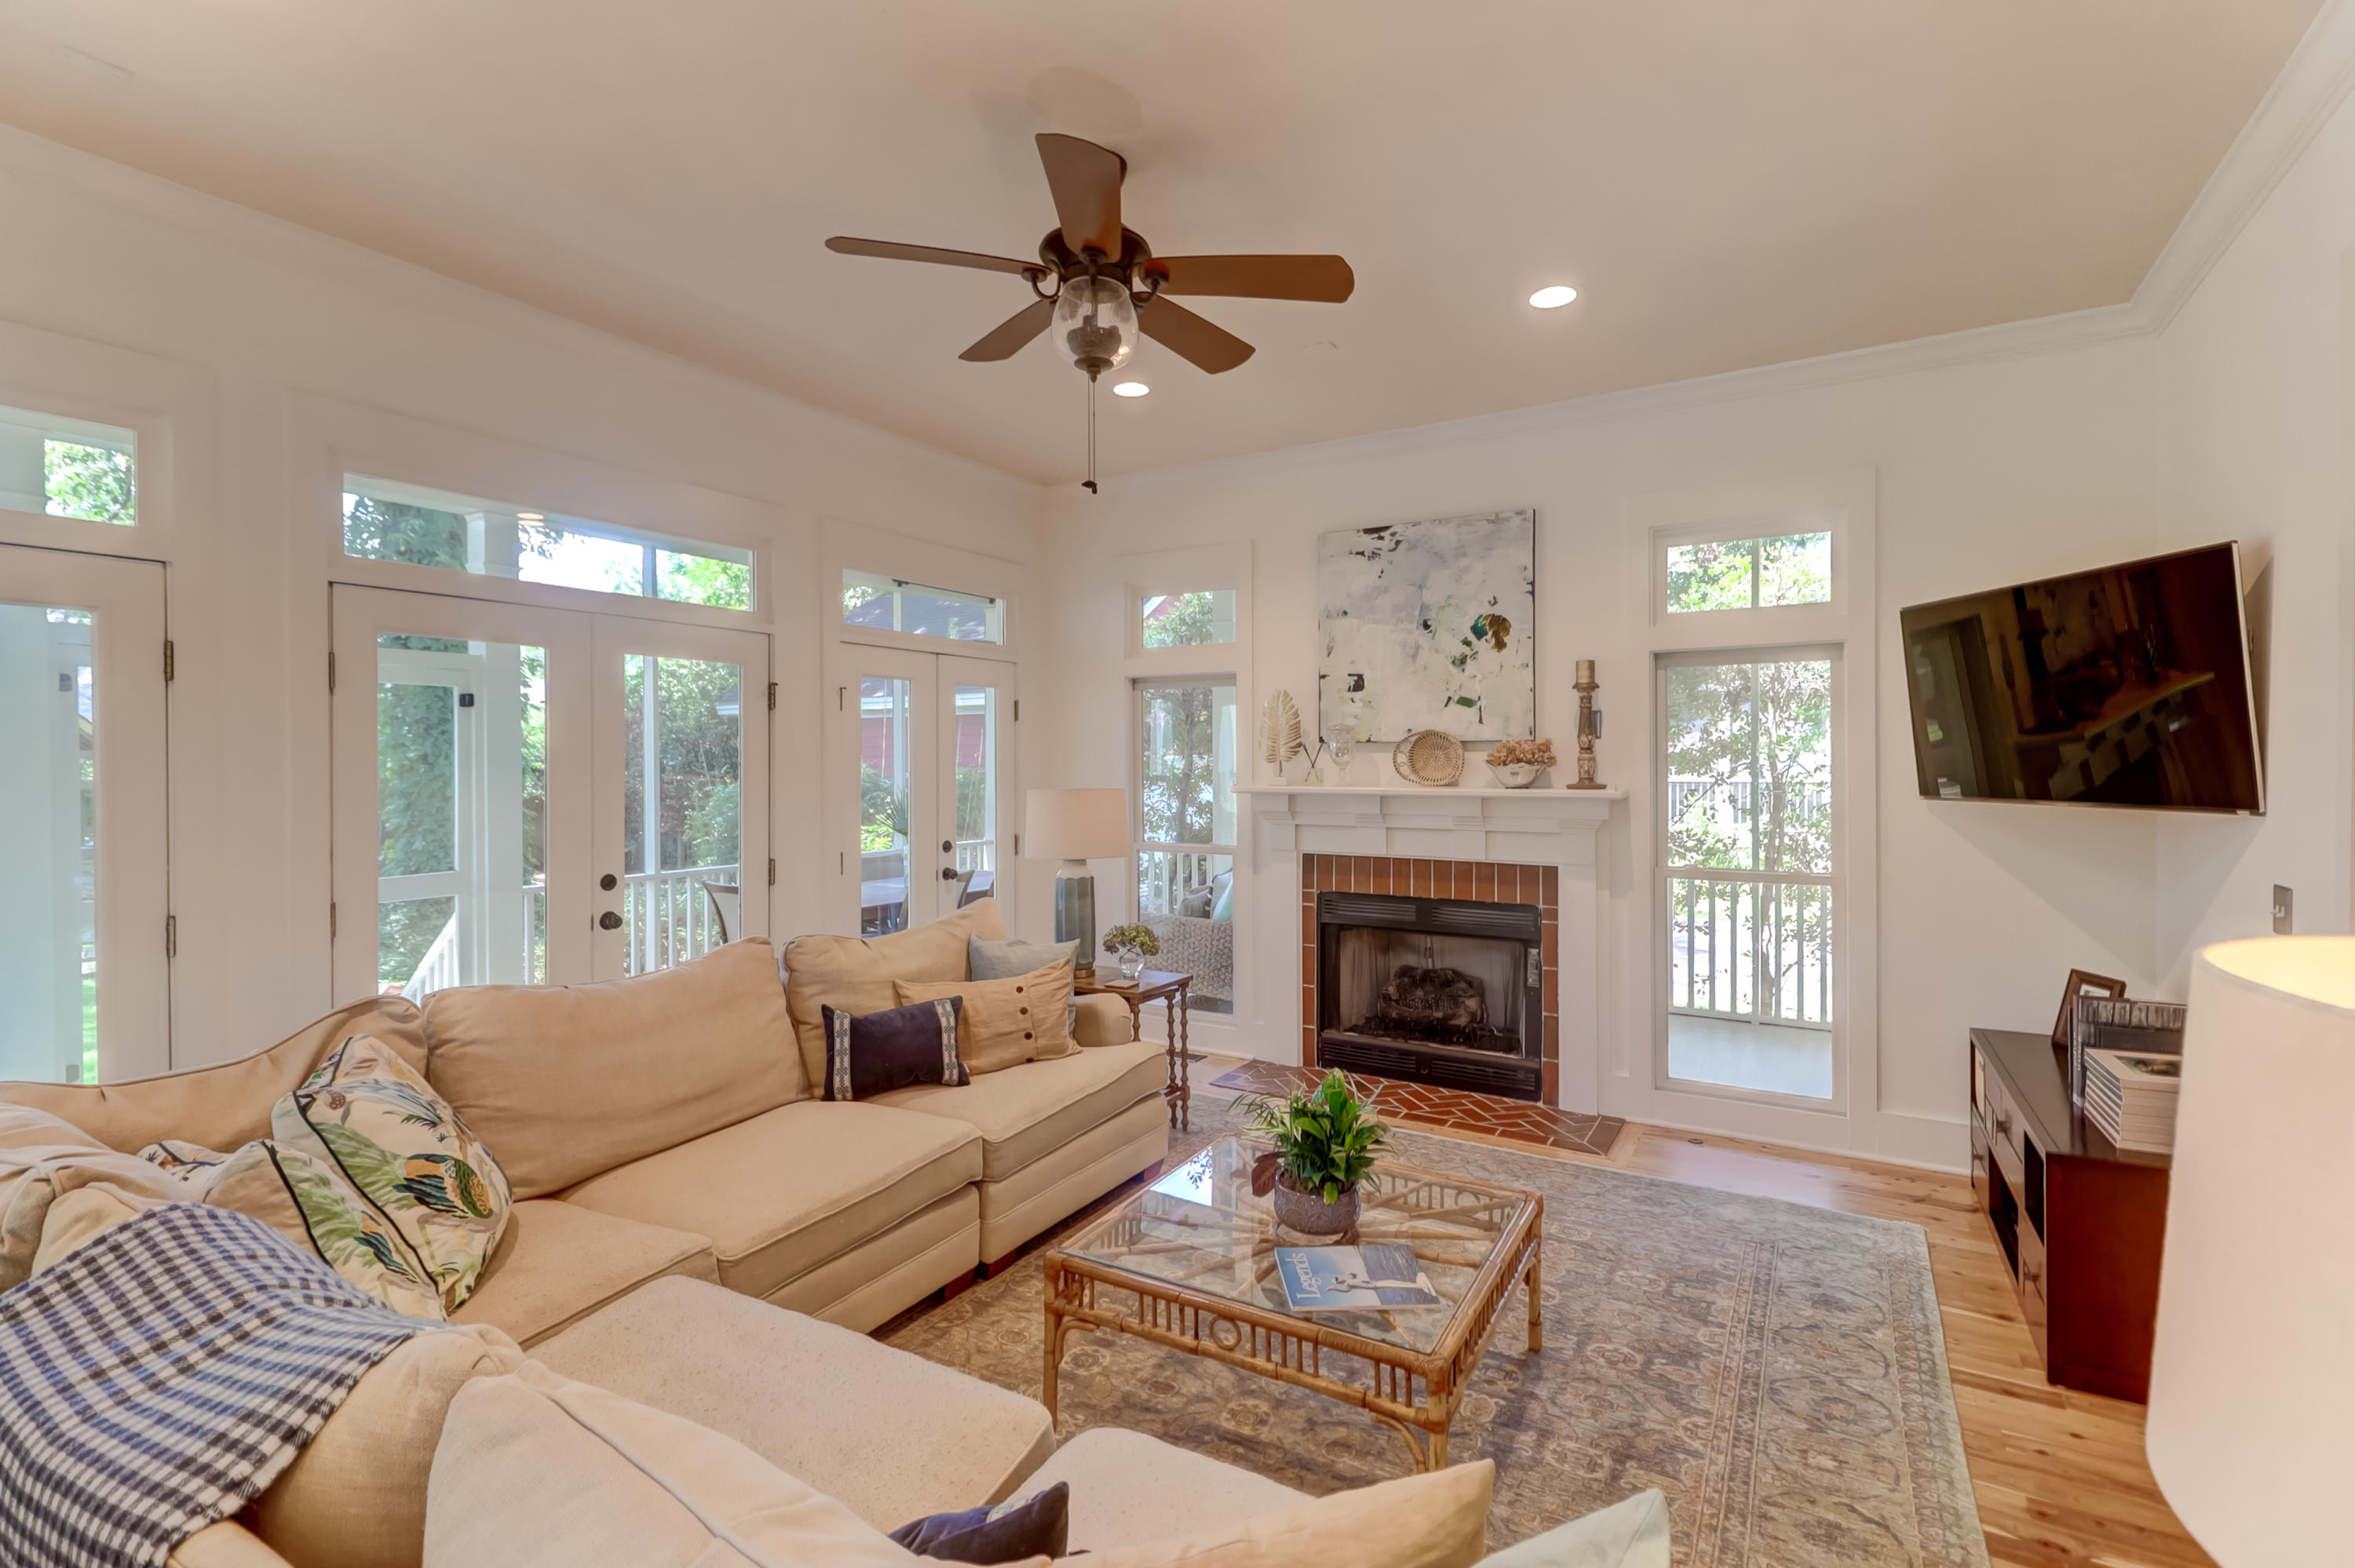 The Villages In St Johns Woods Homes For Sale - 5056 Coral Reef Dr, Johns Island, SC - 13